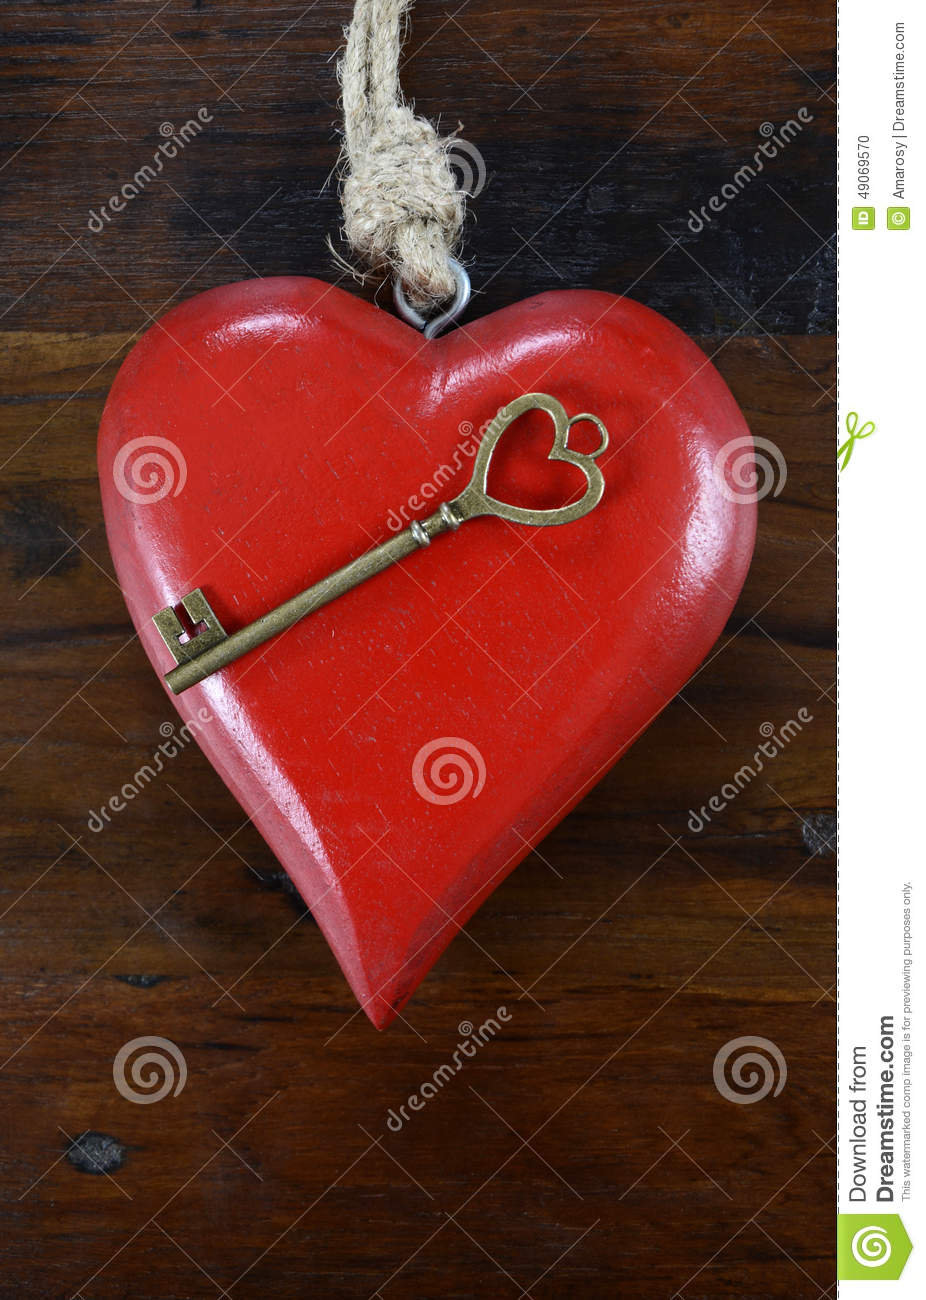 Happy Valentines Day Key To My Heart Concept Stock Photo Image Of